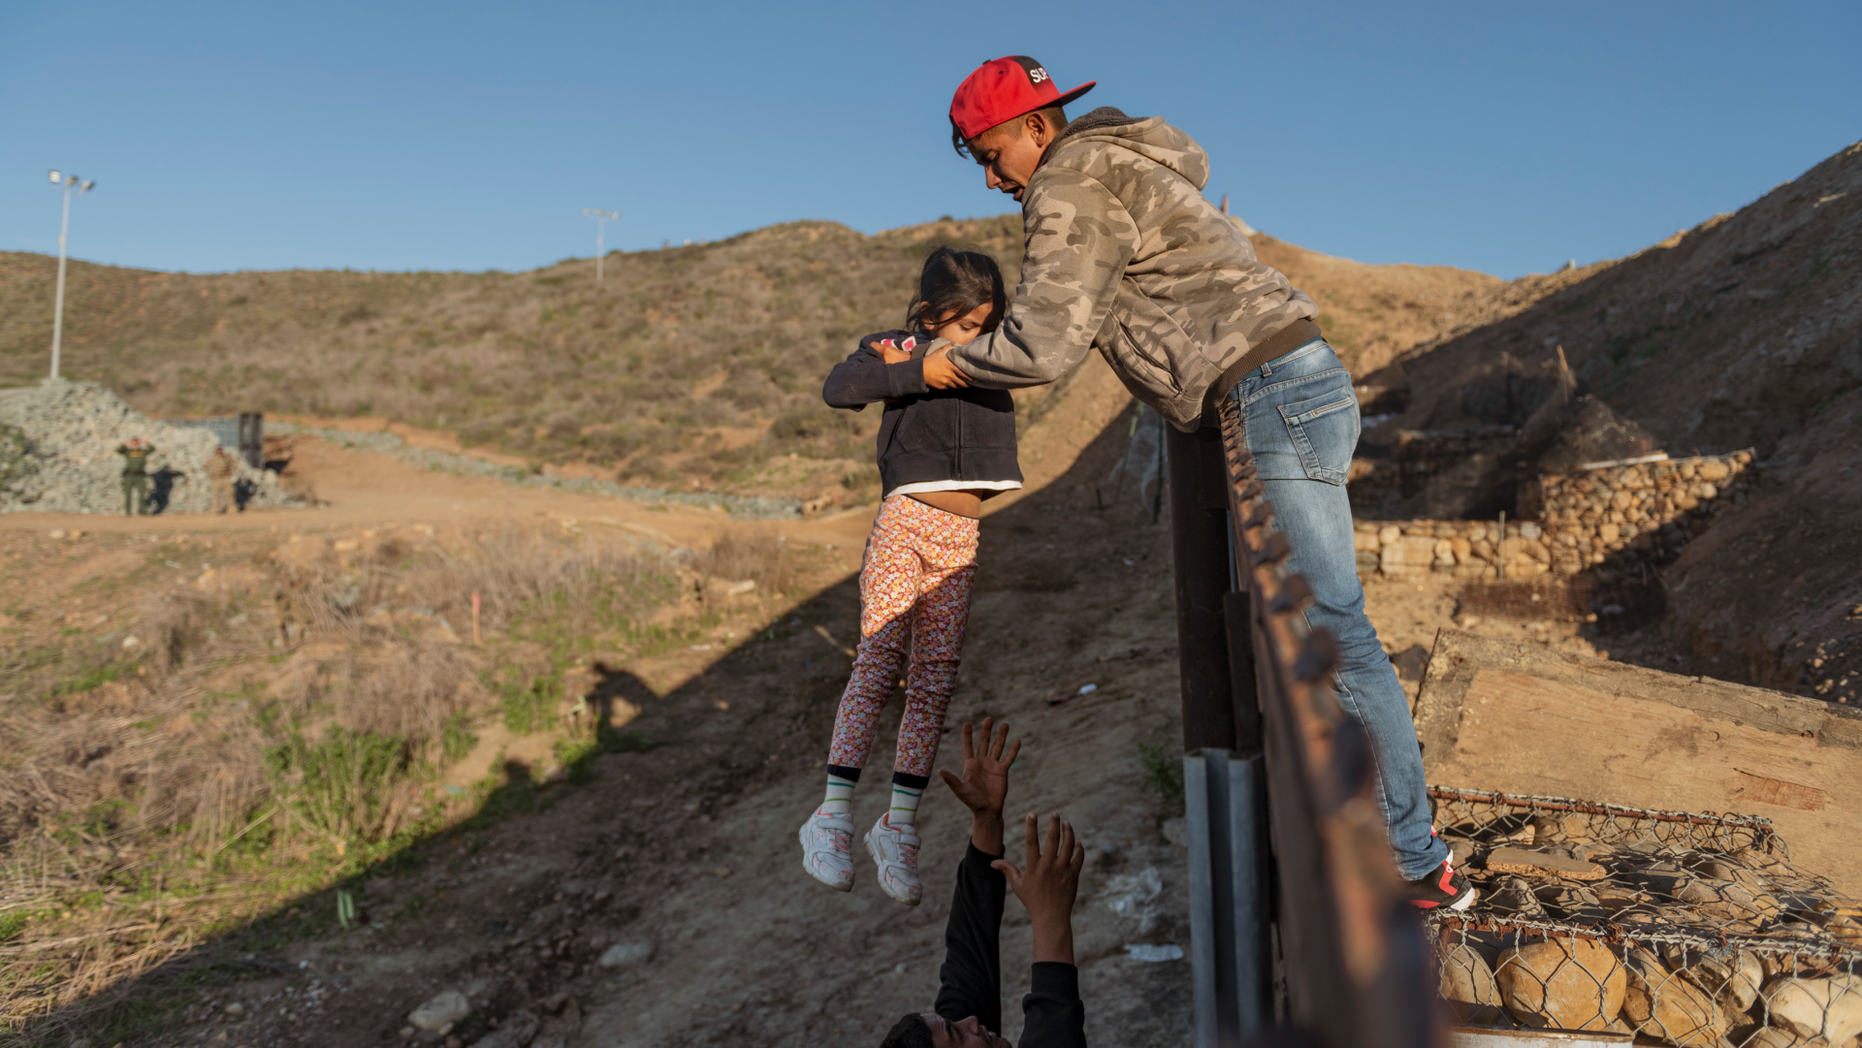 A migrant from Honduras pass a child to her father after he jumped the border fence to get into the U.S. side to San Diego, Calif., from Tijuana, Mexico, Thursday, Jan. 3, 2019. (AP Photo/Daniel Ochoa de Olza)